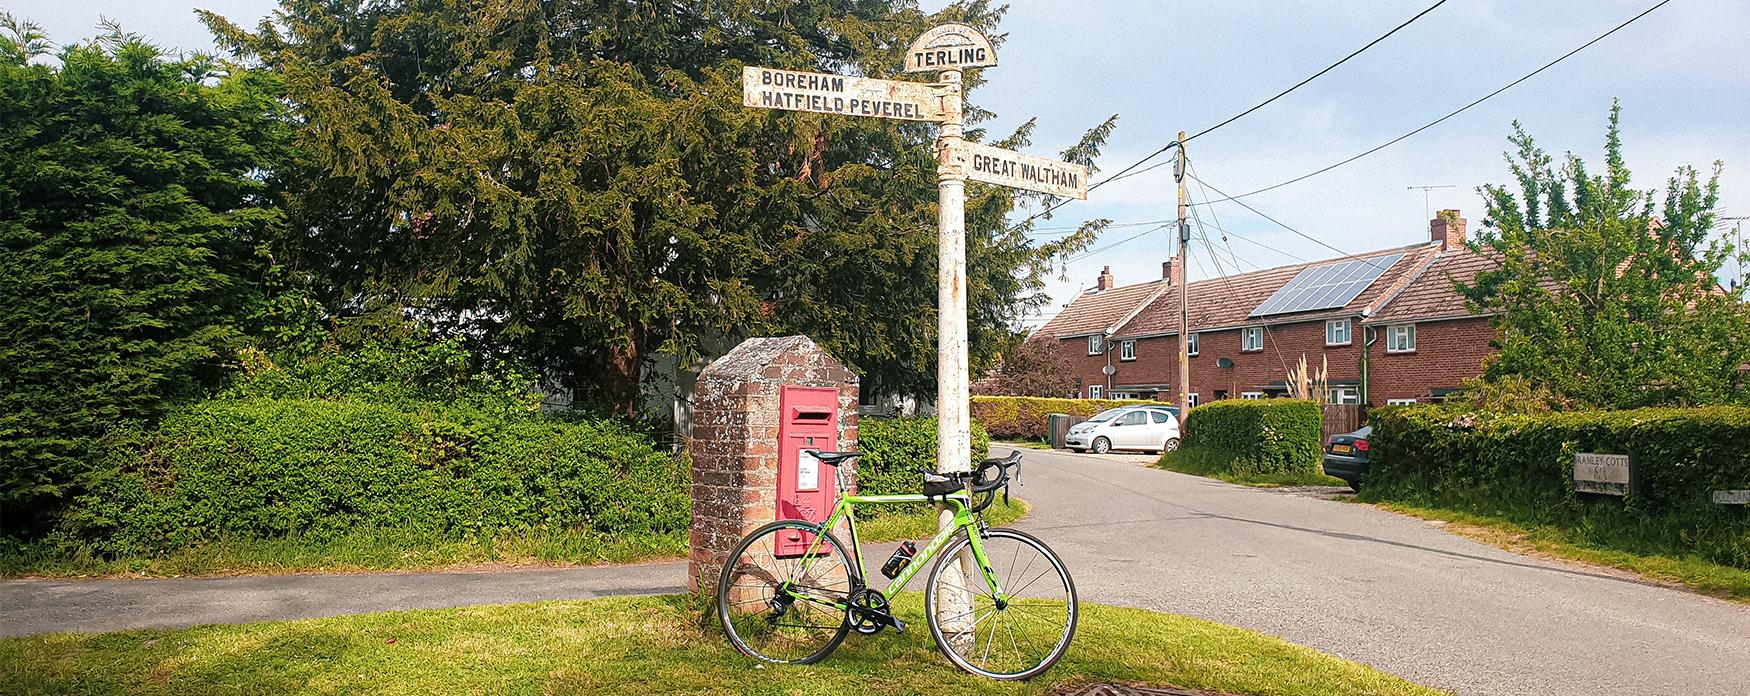 Bicycle propped up against a sign post